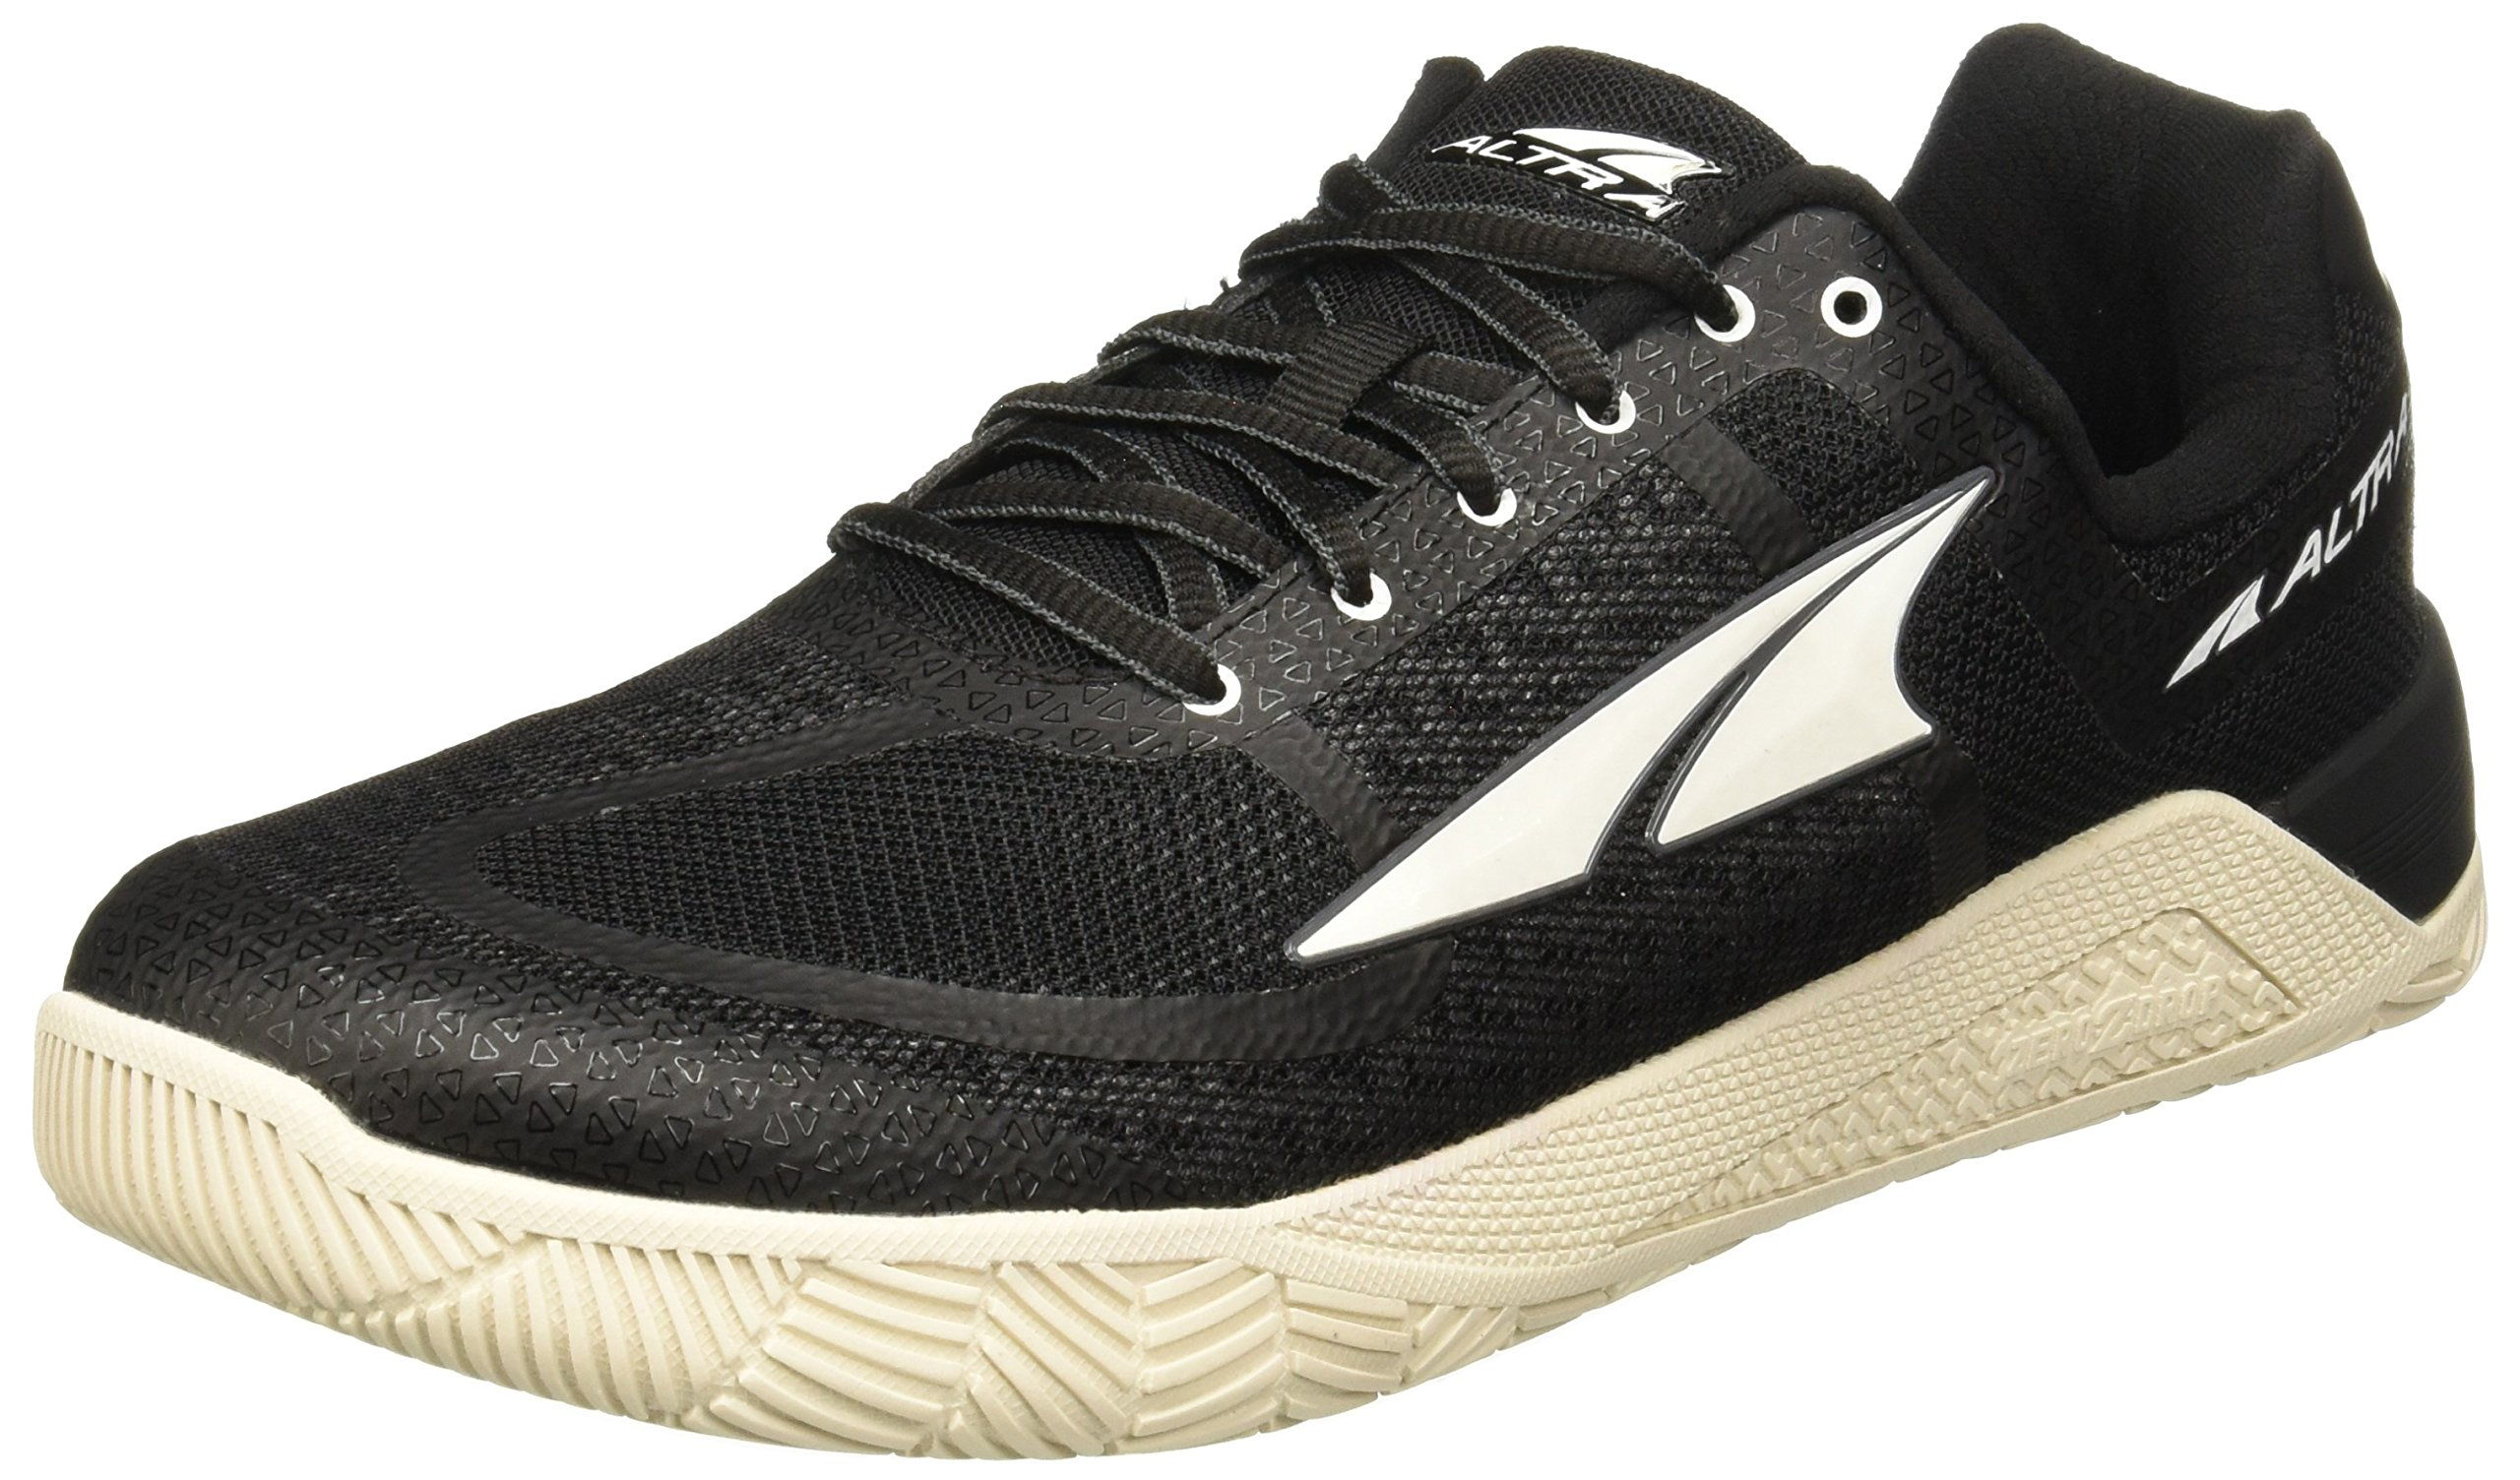 Altra HIIT XT Men's Cross-Training Shoe, Black, 11 by Altra